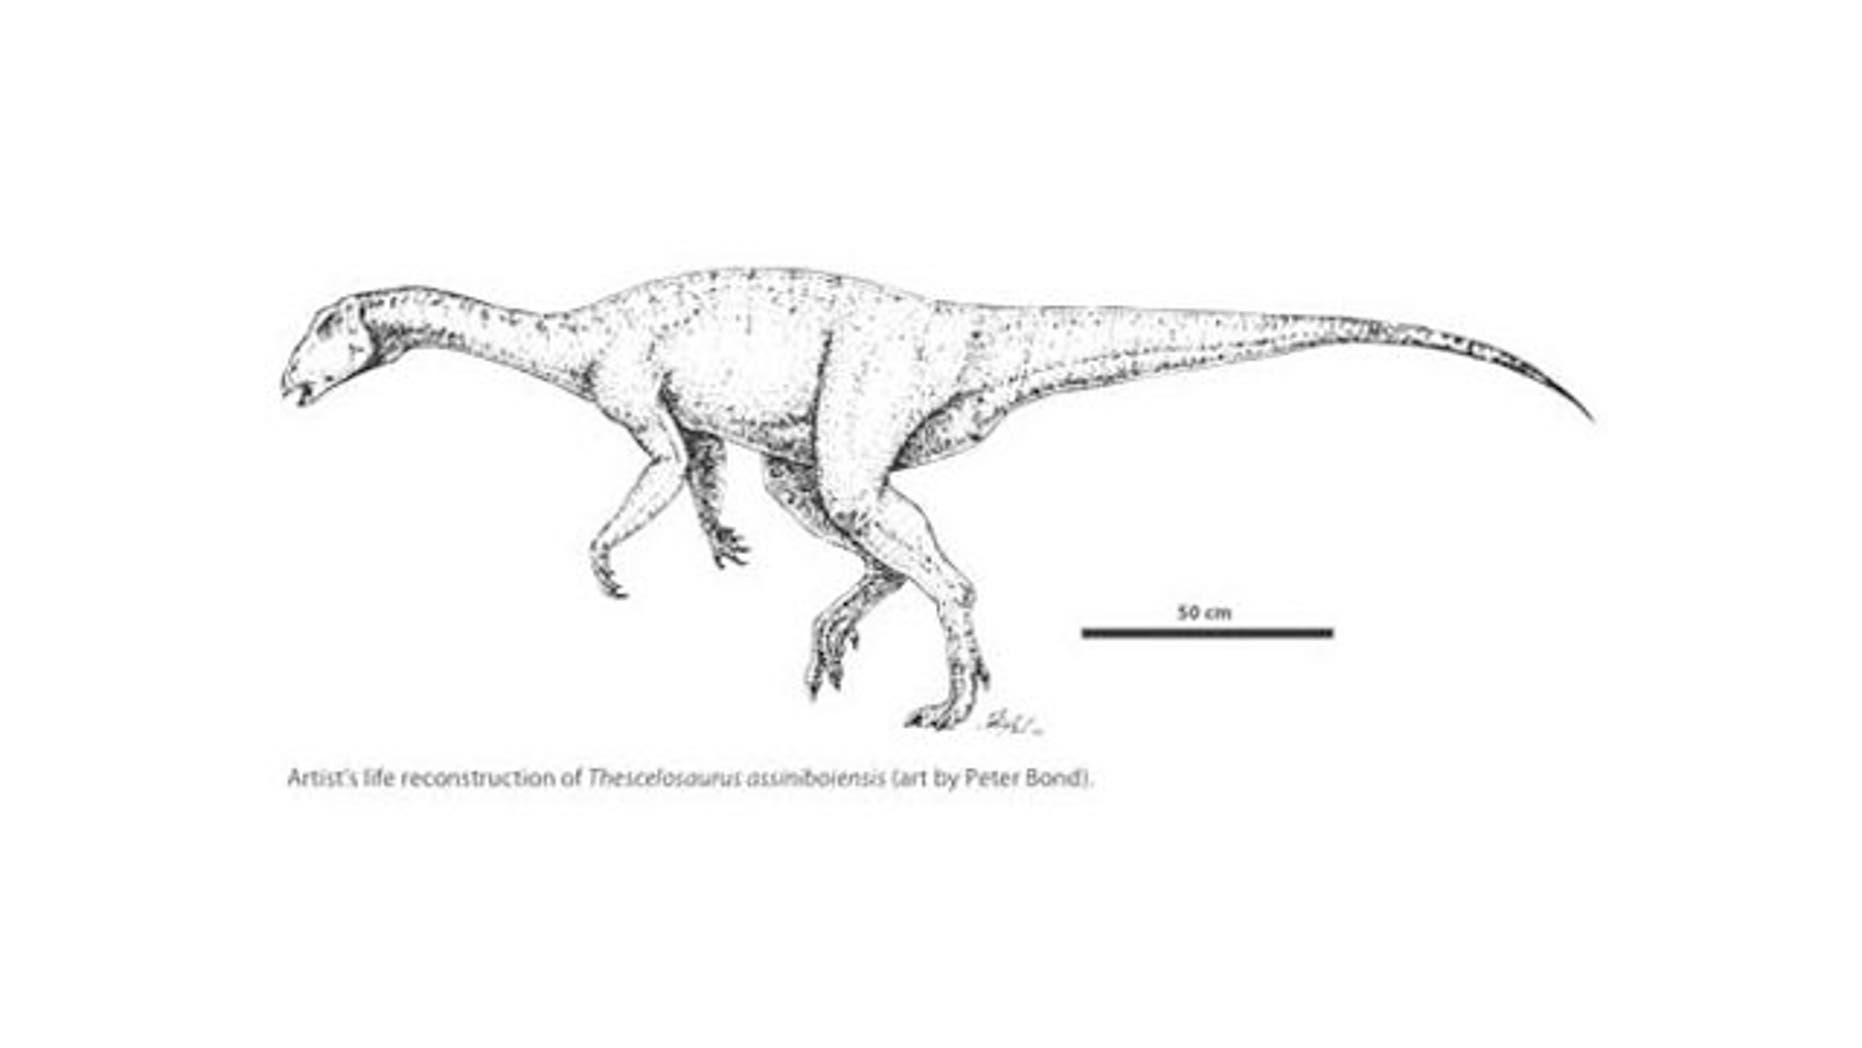 Research confirms that a partial skeleton discovered in Saskatchewan is a new species of plant-eating dinosaur, named Thescelosaurus assiniboiensis after Saskatchewan's historic District of Assiniboia in which it was found.